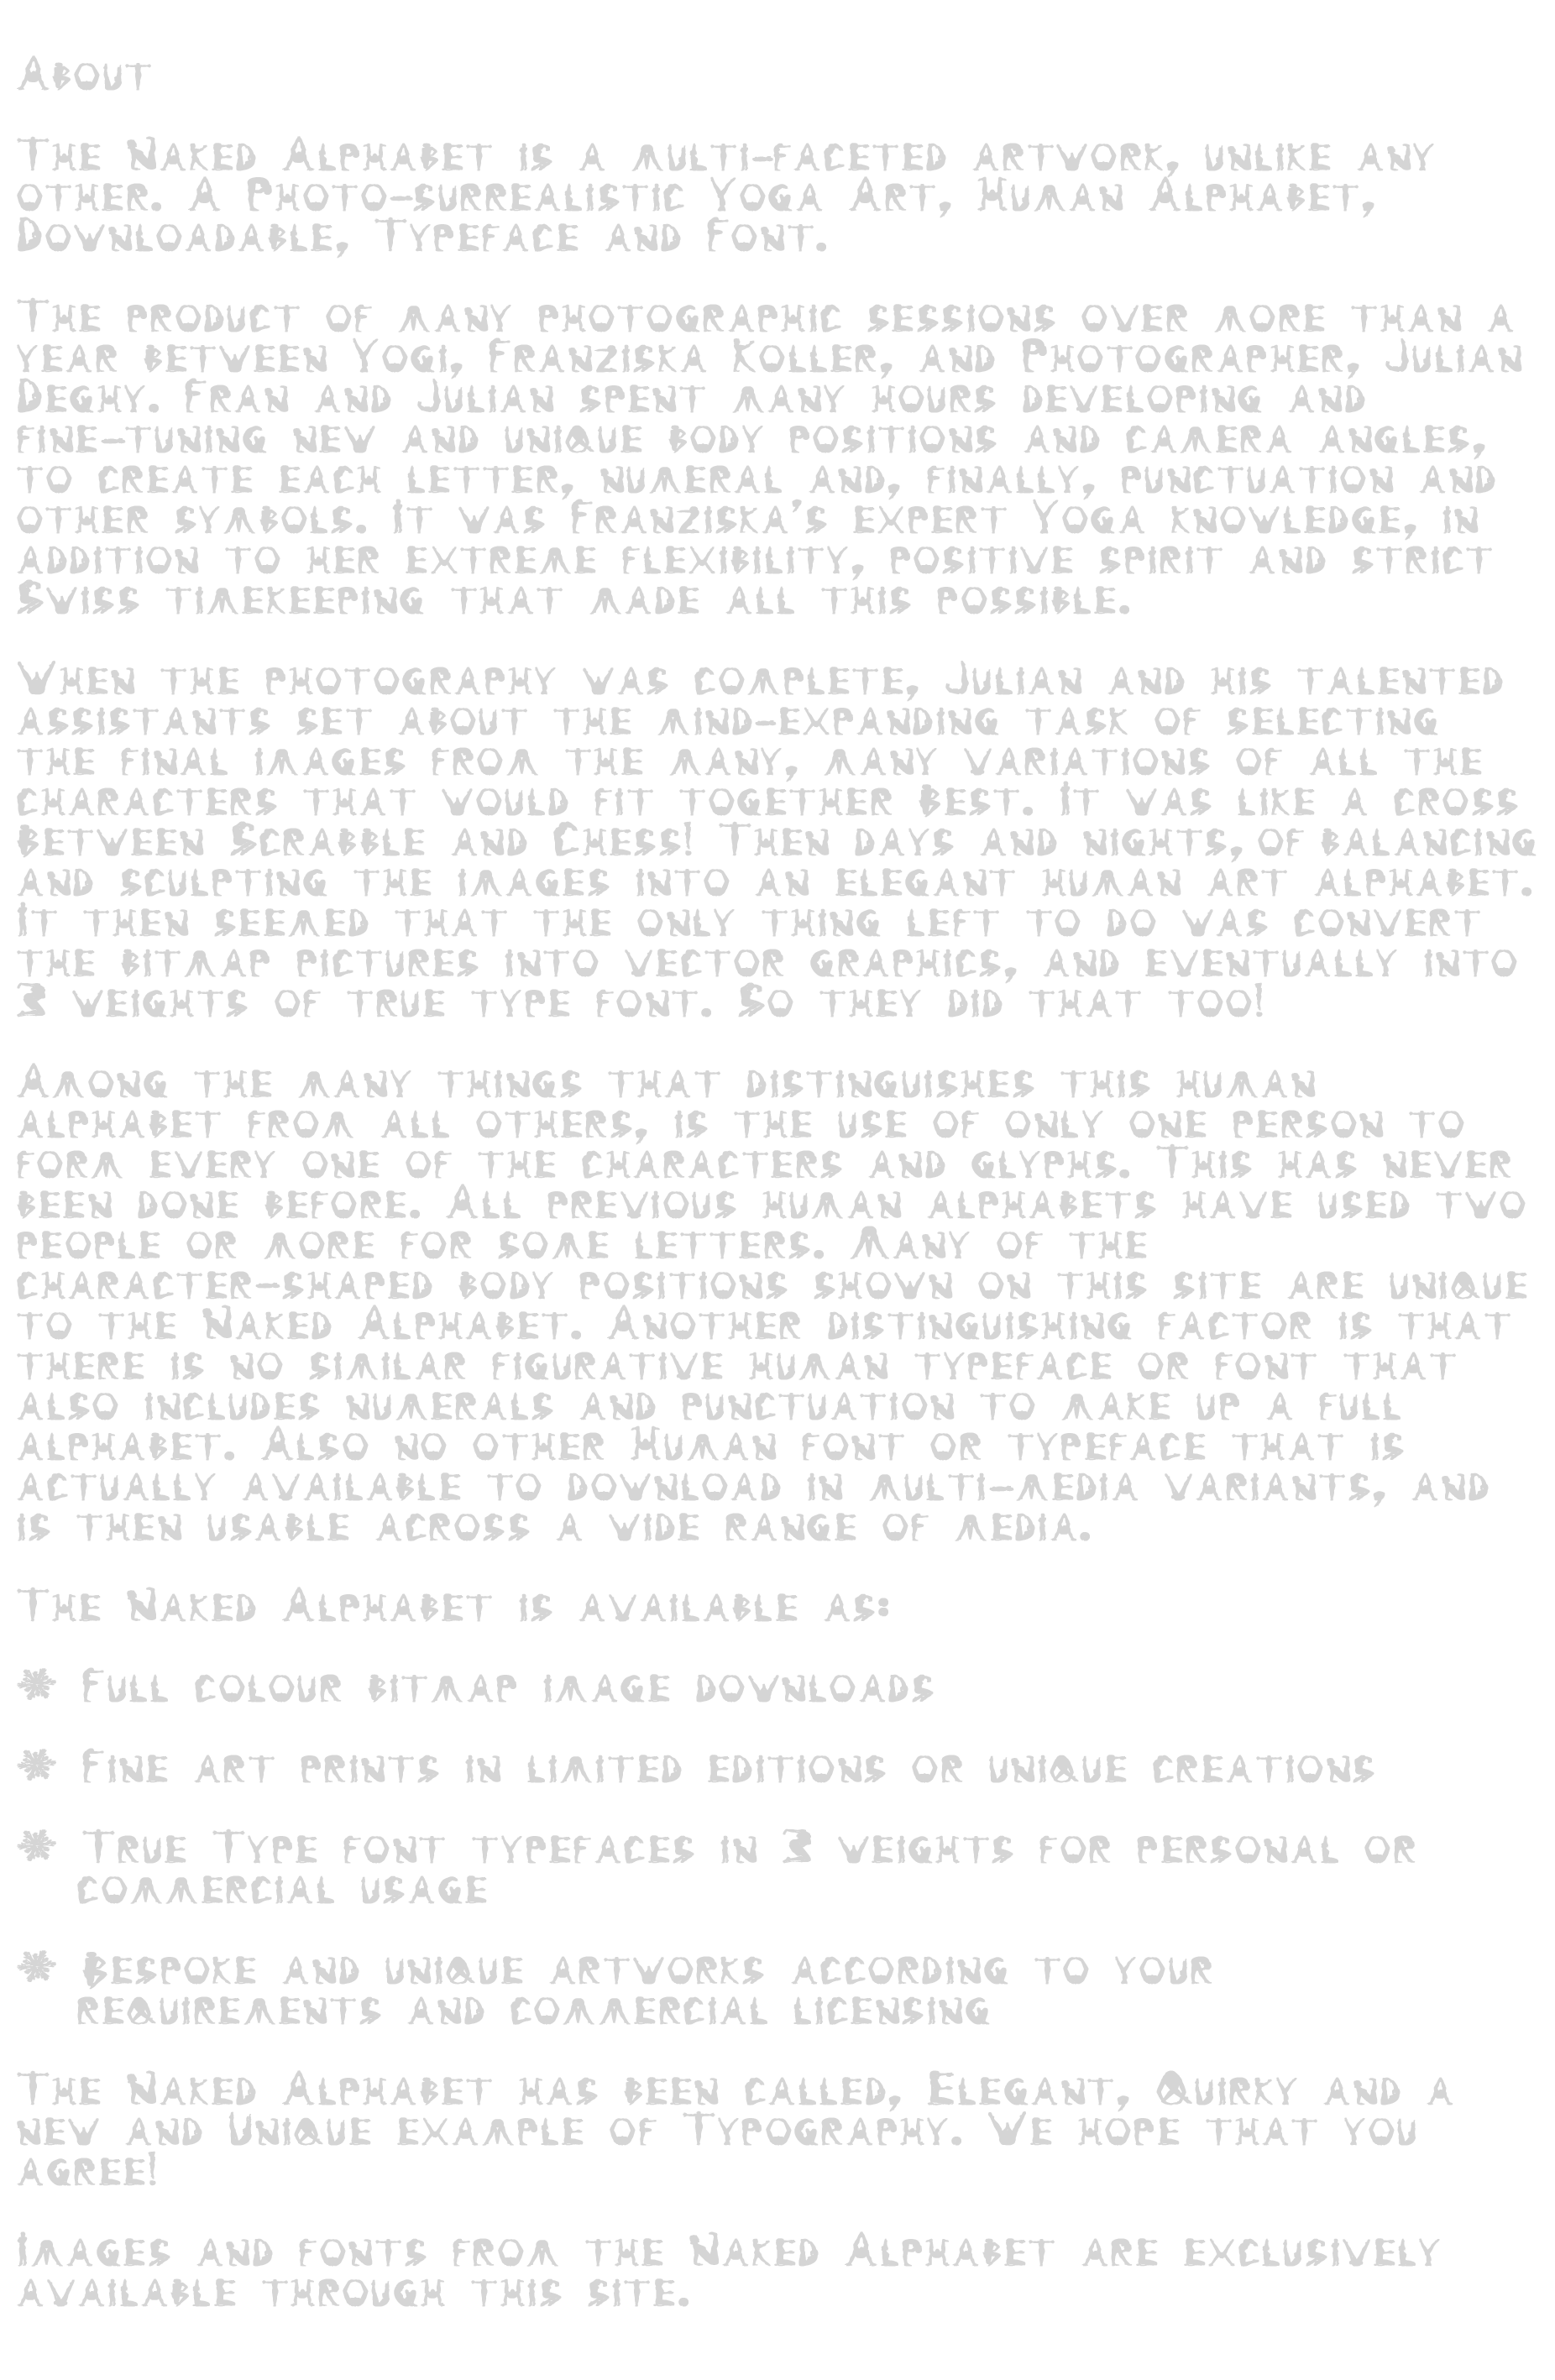 Nakedalphabet.com About us page text as NA Heavy Font as image png file